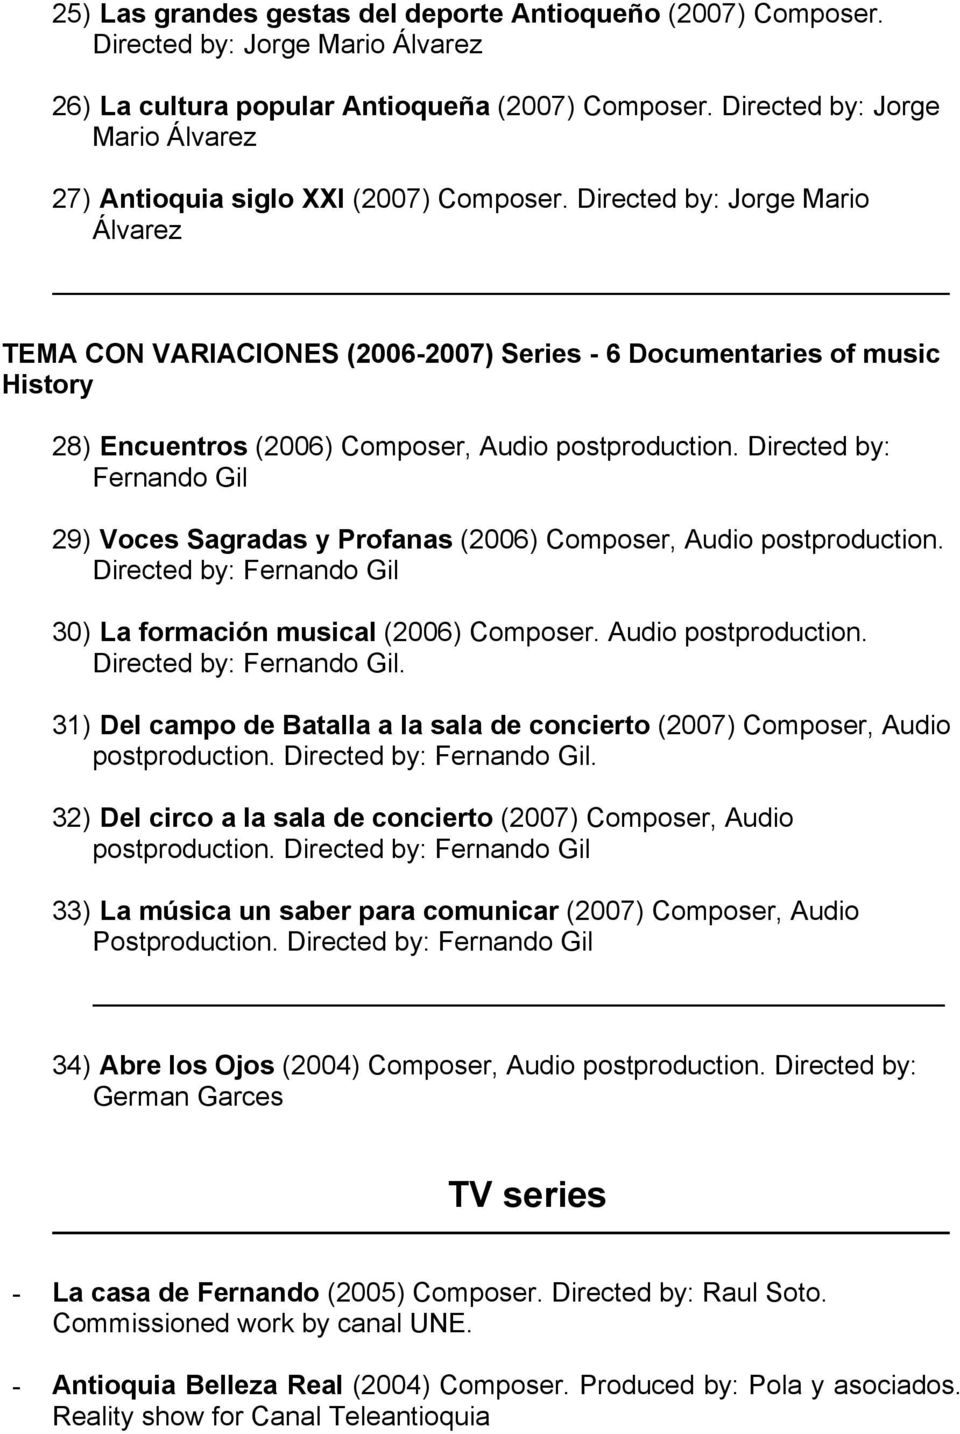 Directed by: Jorge Mario TEMA CON VARIACIONES (2006-2007) Series - 6 Documentaries of music History 28) Encuentros (2006) Composer, Audio postproduction.